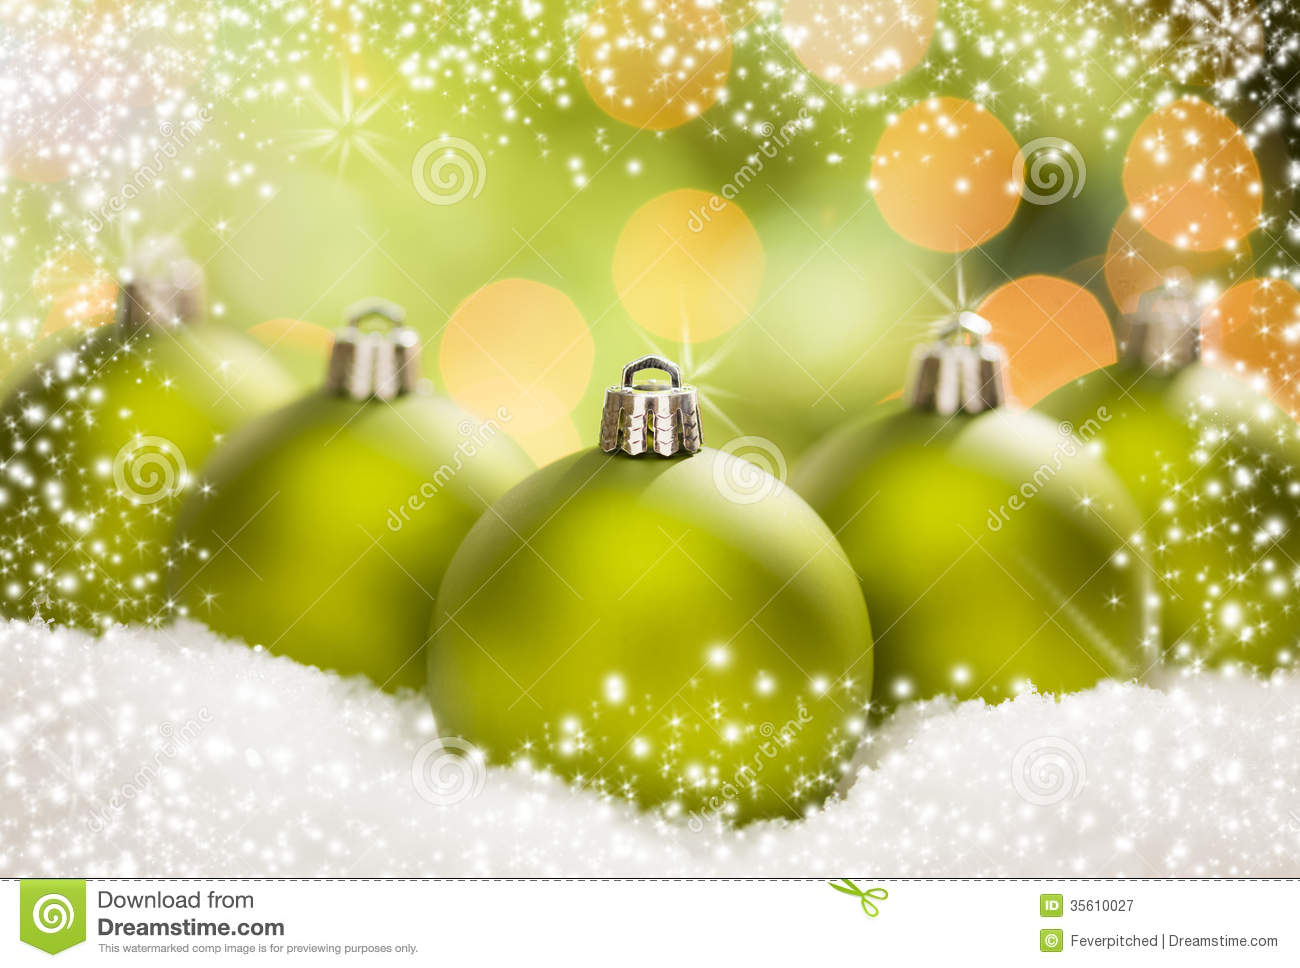 Three Green Christmas Ornaments On Snow Over An Abstract Background